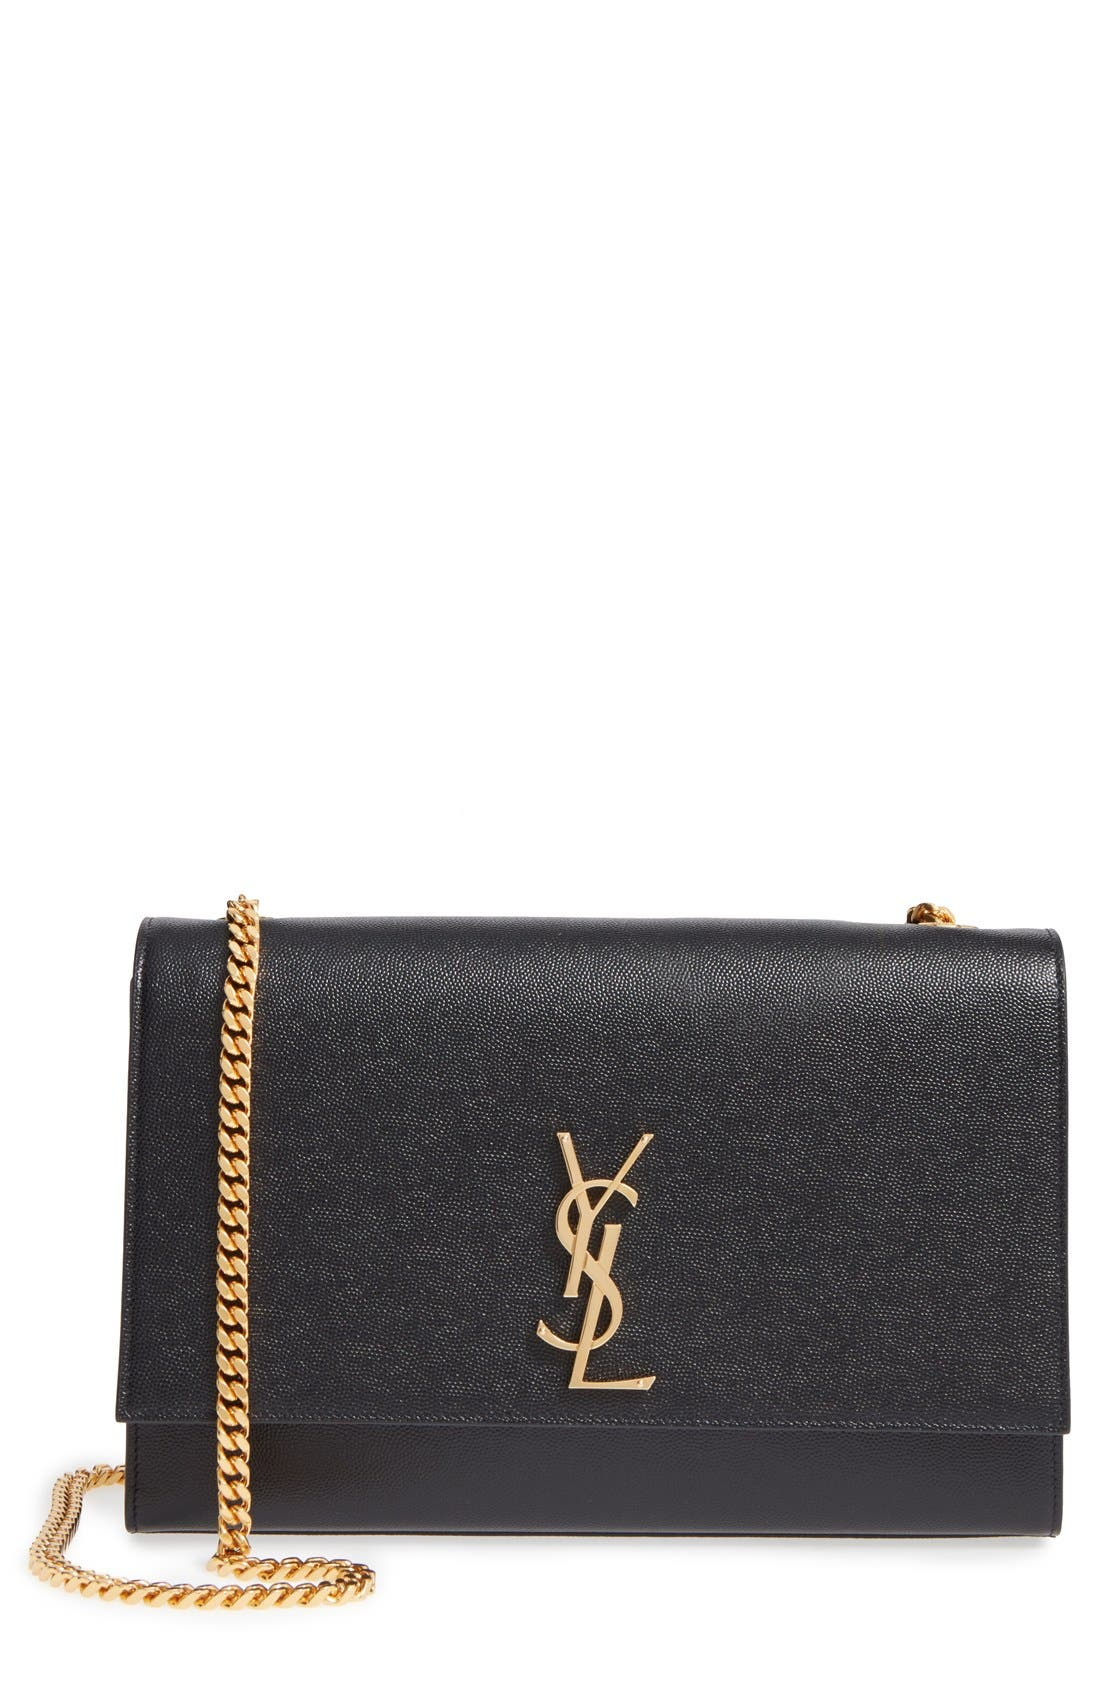 SAINT LAURENT Large Kate Monogram Leather Shoulder Bag